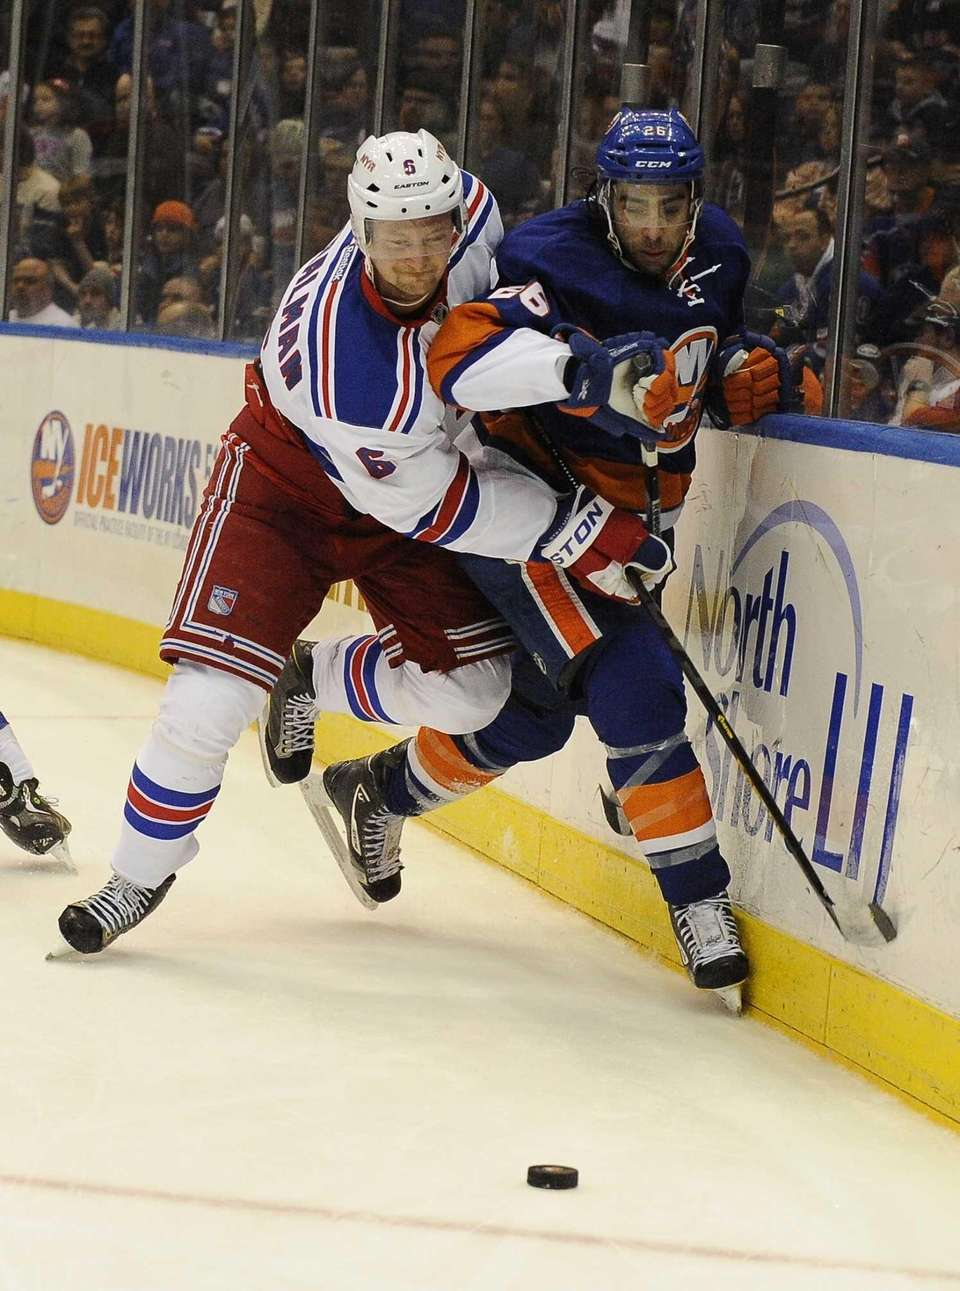 Anton Stralman of the Rangers and Matt Moulson